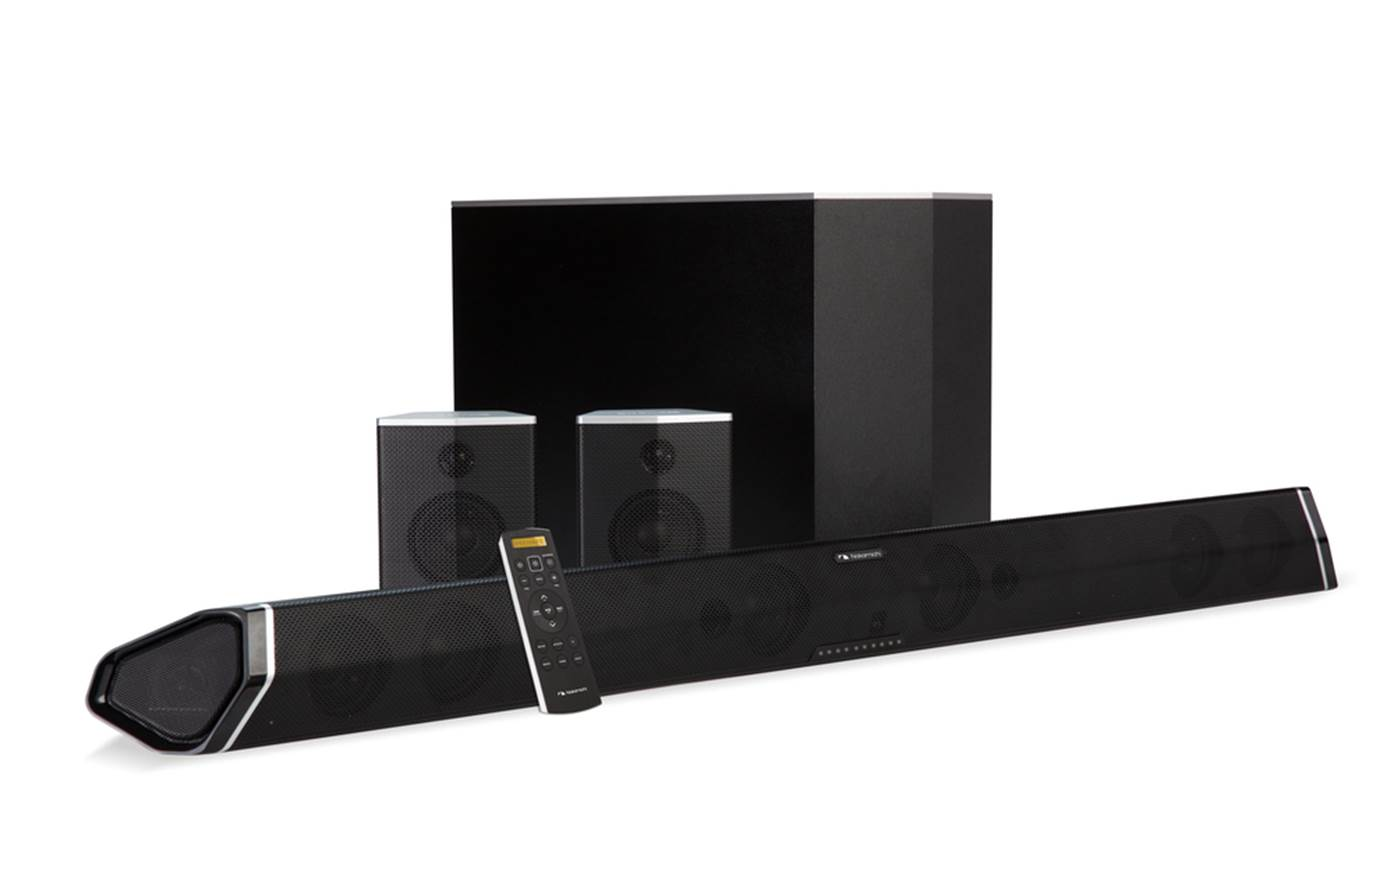 Nakamichi Shockwafe Pro 7.1 Wireless Home Theater System